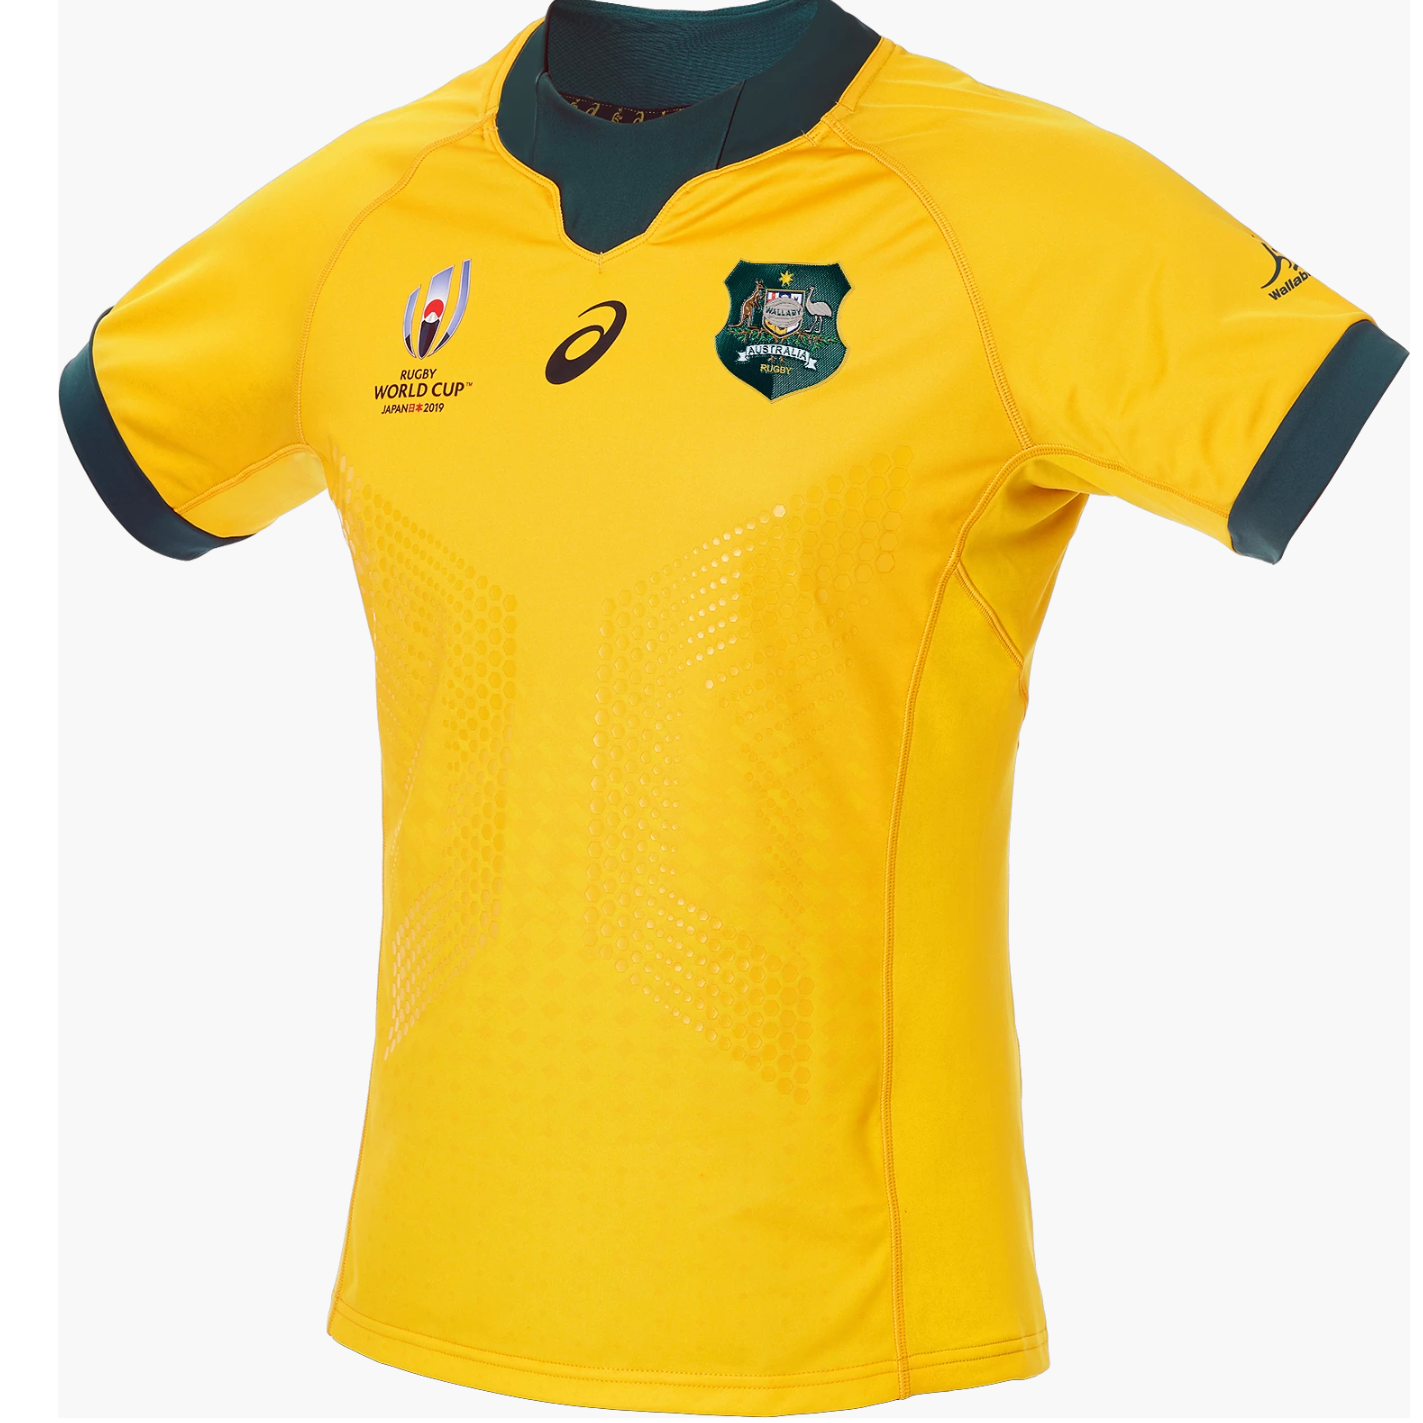 Australia Rugby World Cup 2019 Home Kit Cheap Soccer Jersey Rugby Outfit Rugby World Cup Australia Rugby